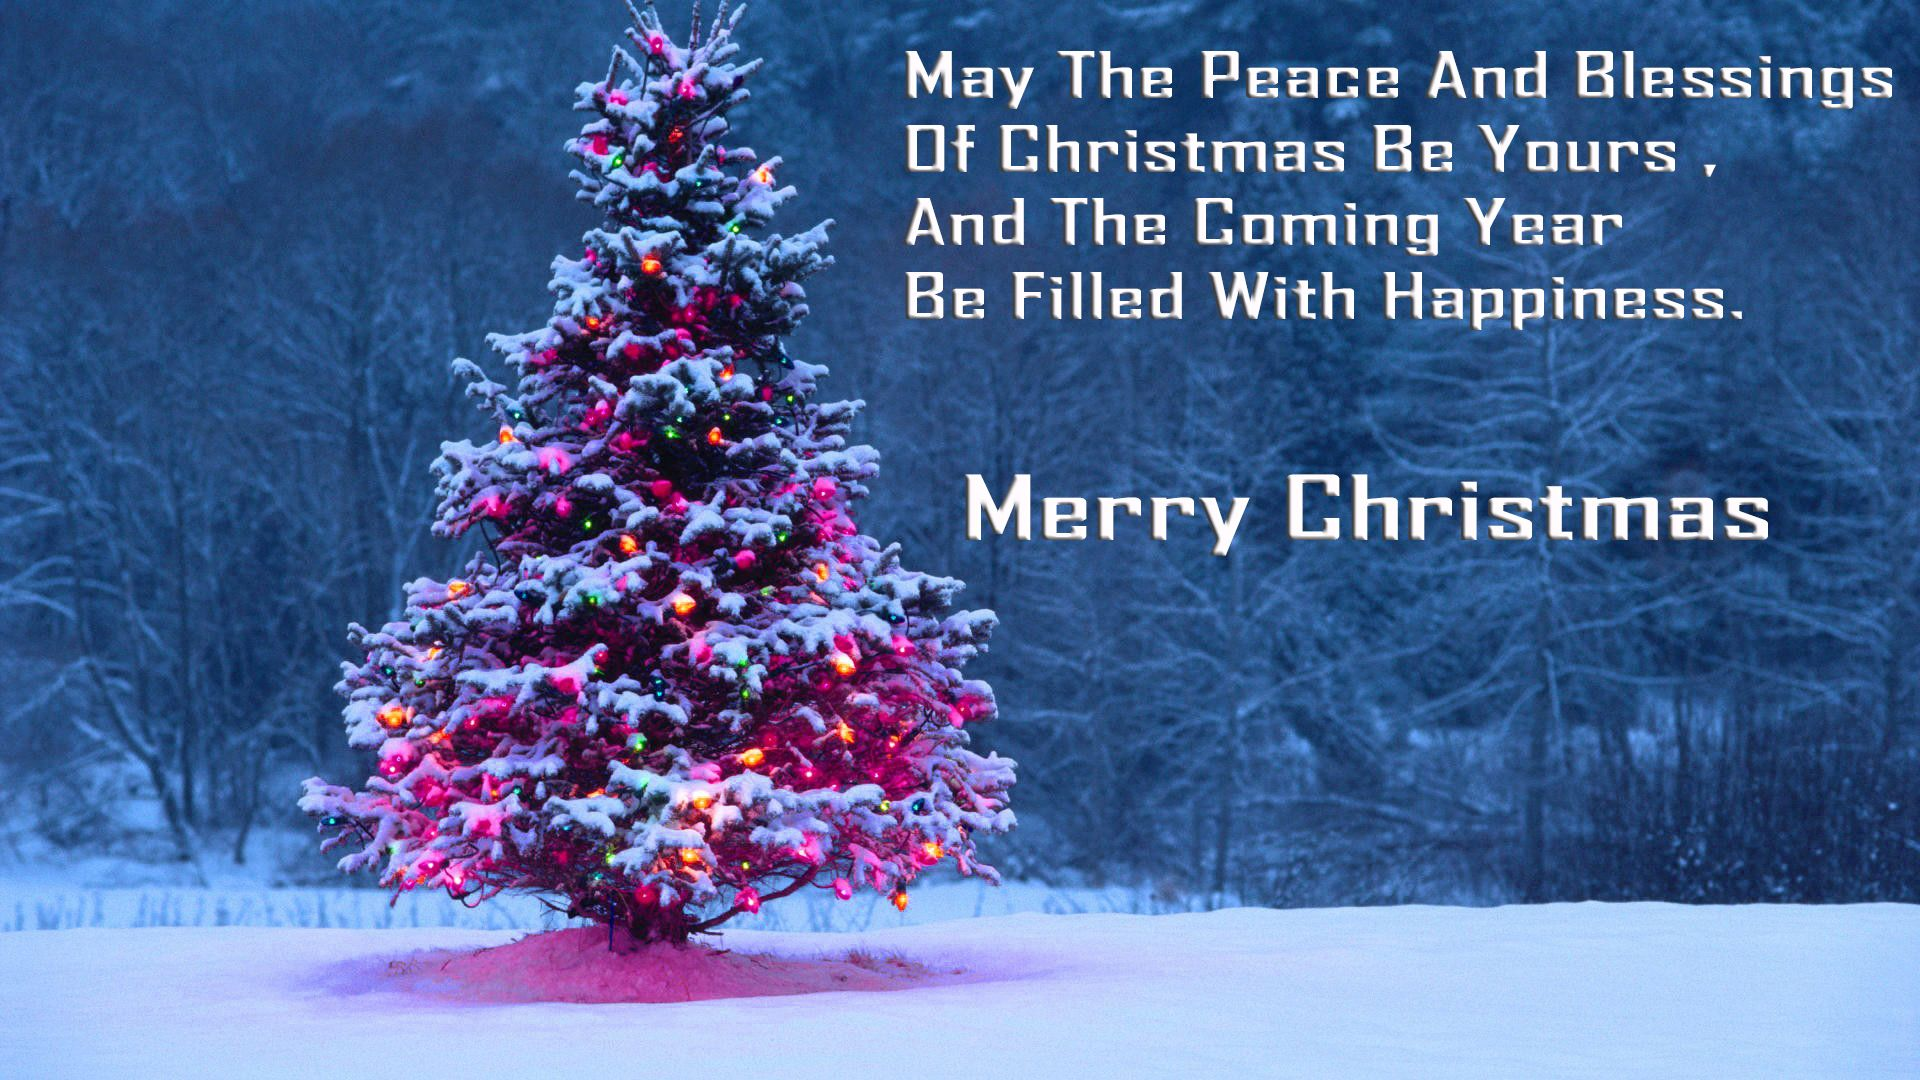 Christmas Tree 1080p Widescreen Desktop Wallpaper Hd Wallpapers Merry Christmas Wishes Peace On Earth Christmas